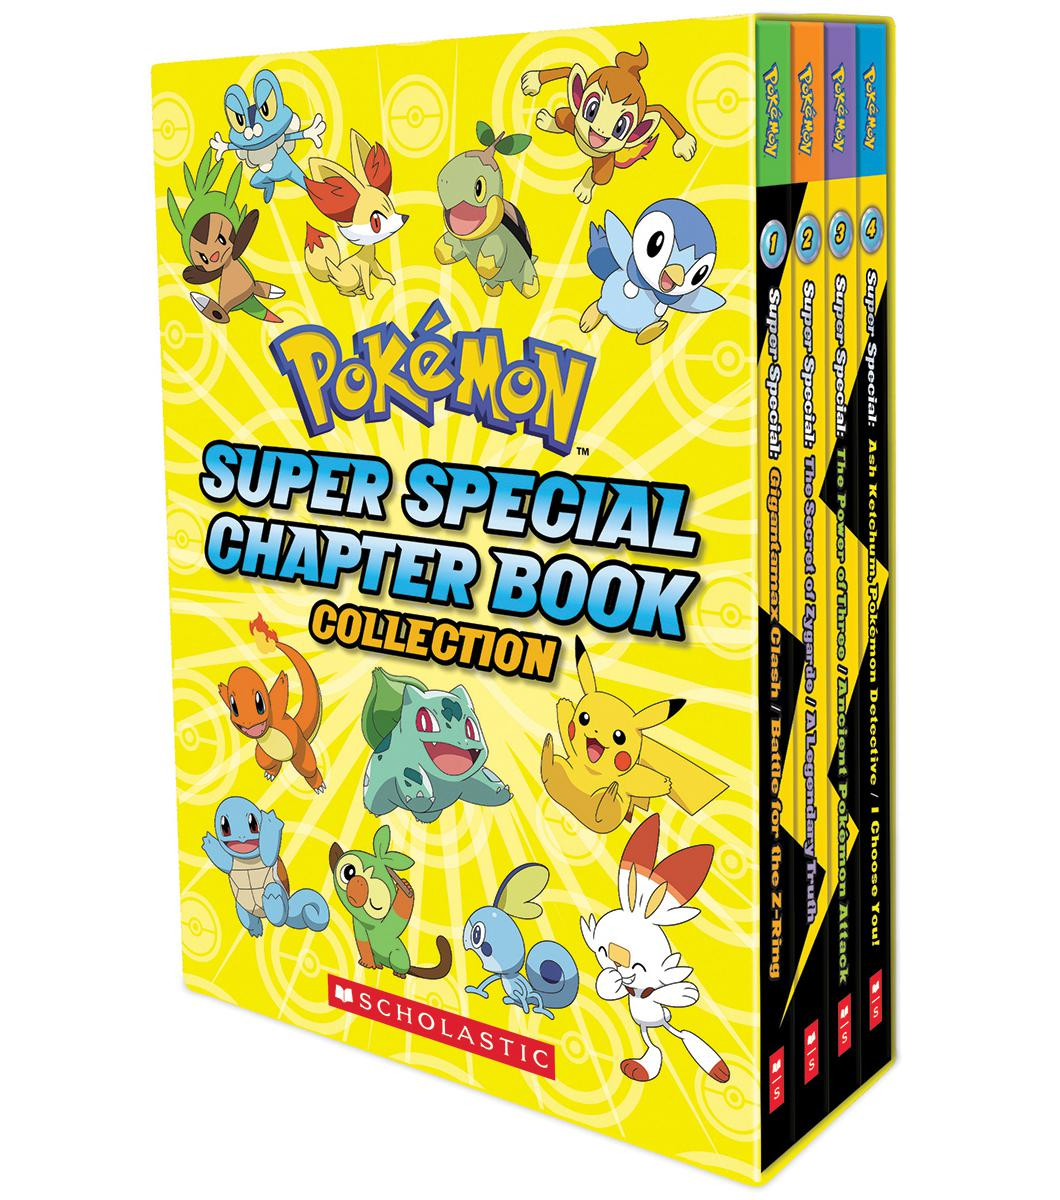 Pokémon: Super Special Chapter Book Collection Boxed Set